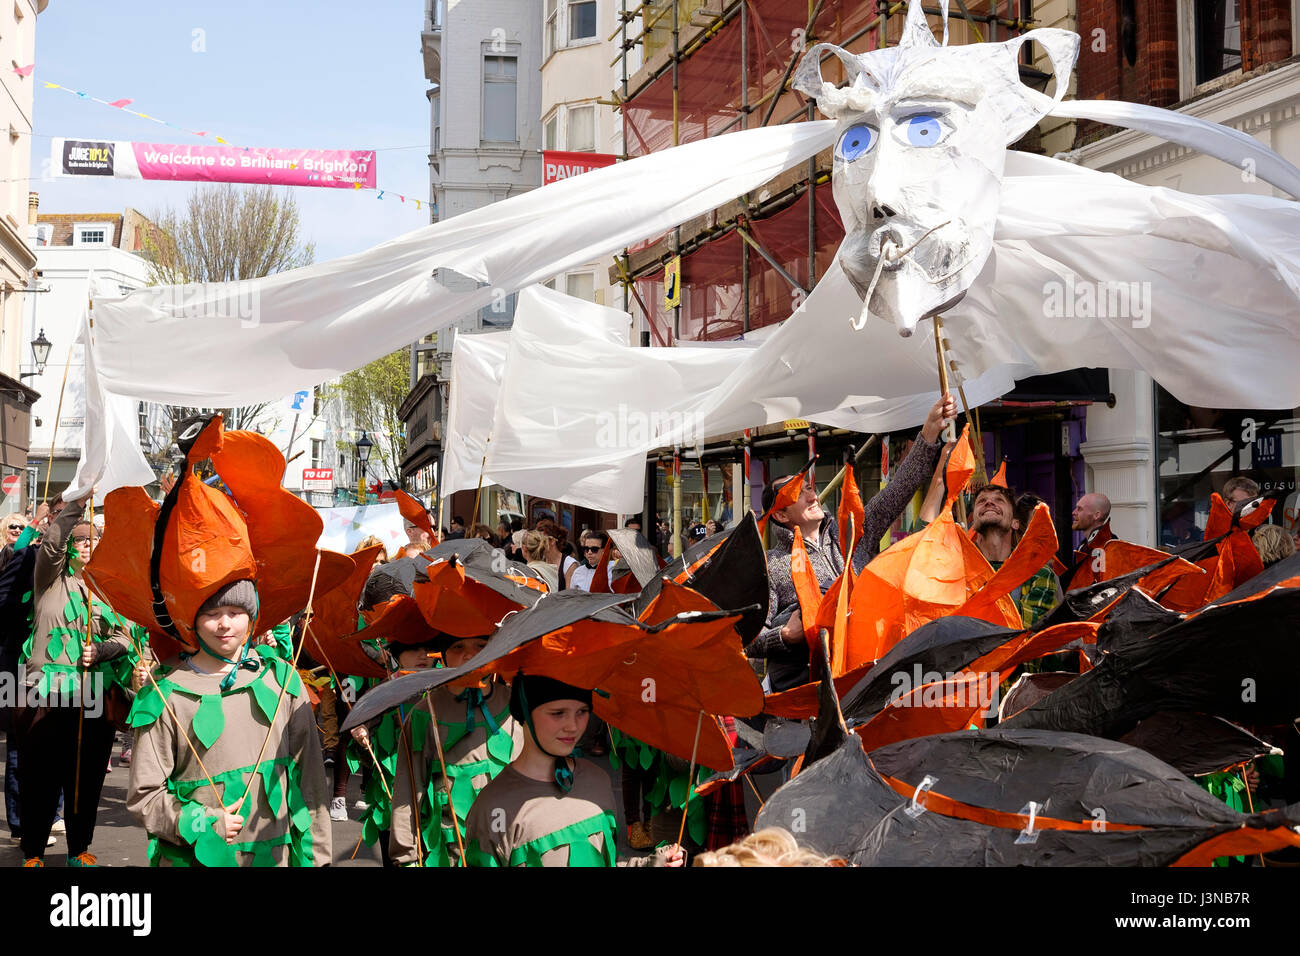 Brighton, UK. 6th May, 2017: Each year the first day of the Brighton Festival opens with the colourful Childrens' Parade through the streets of the city centre. Primary and Junior schools from throughout the city take part in a parade of music and costume, this year the theme was 'Poetry in Motion' reflecting Kate Tempest being the 2017 festival curator. Credit:  Scott Hortop/Alamy Live News Stock Photo